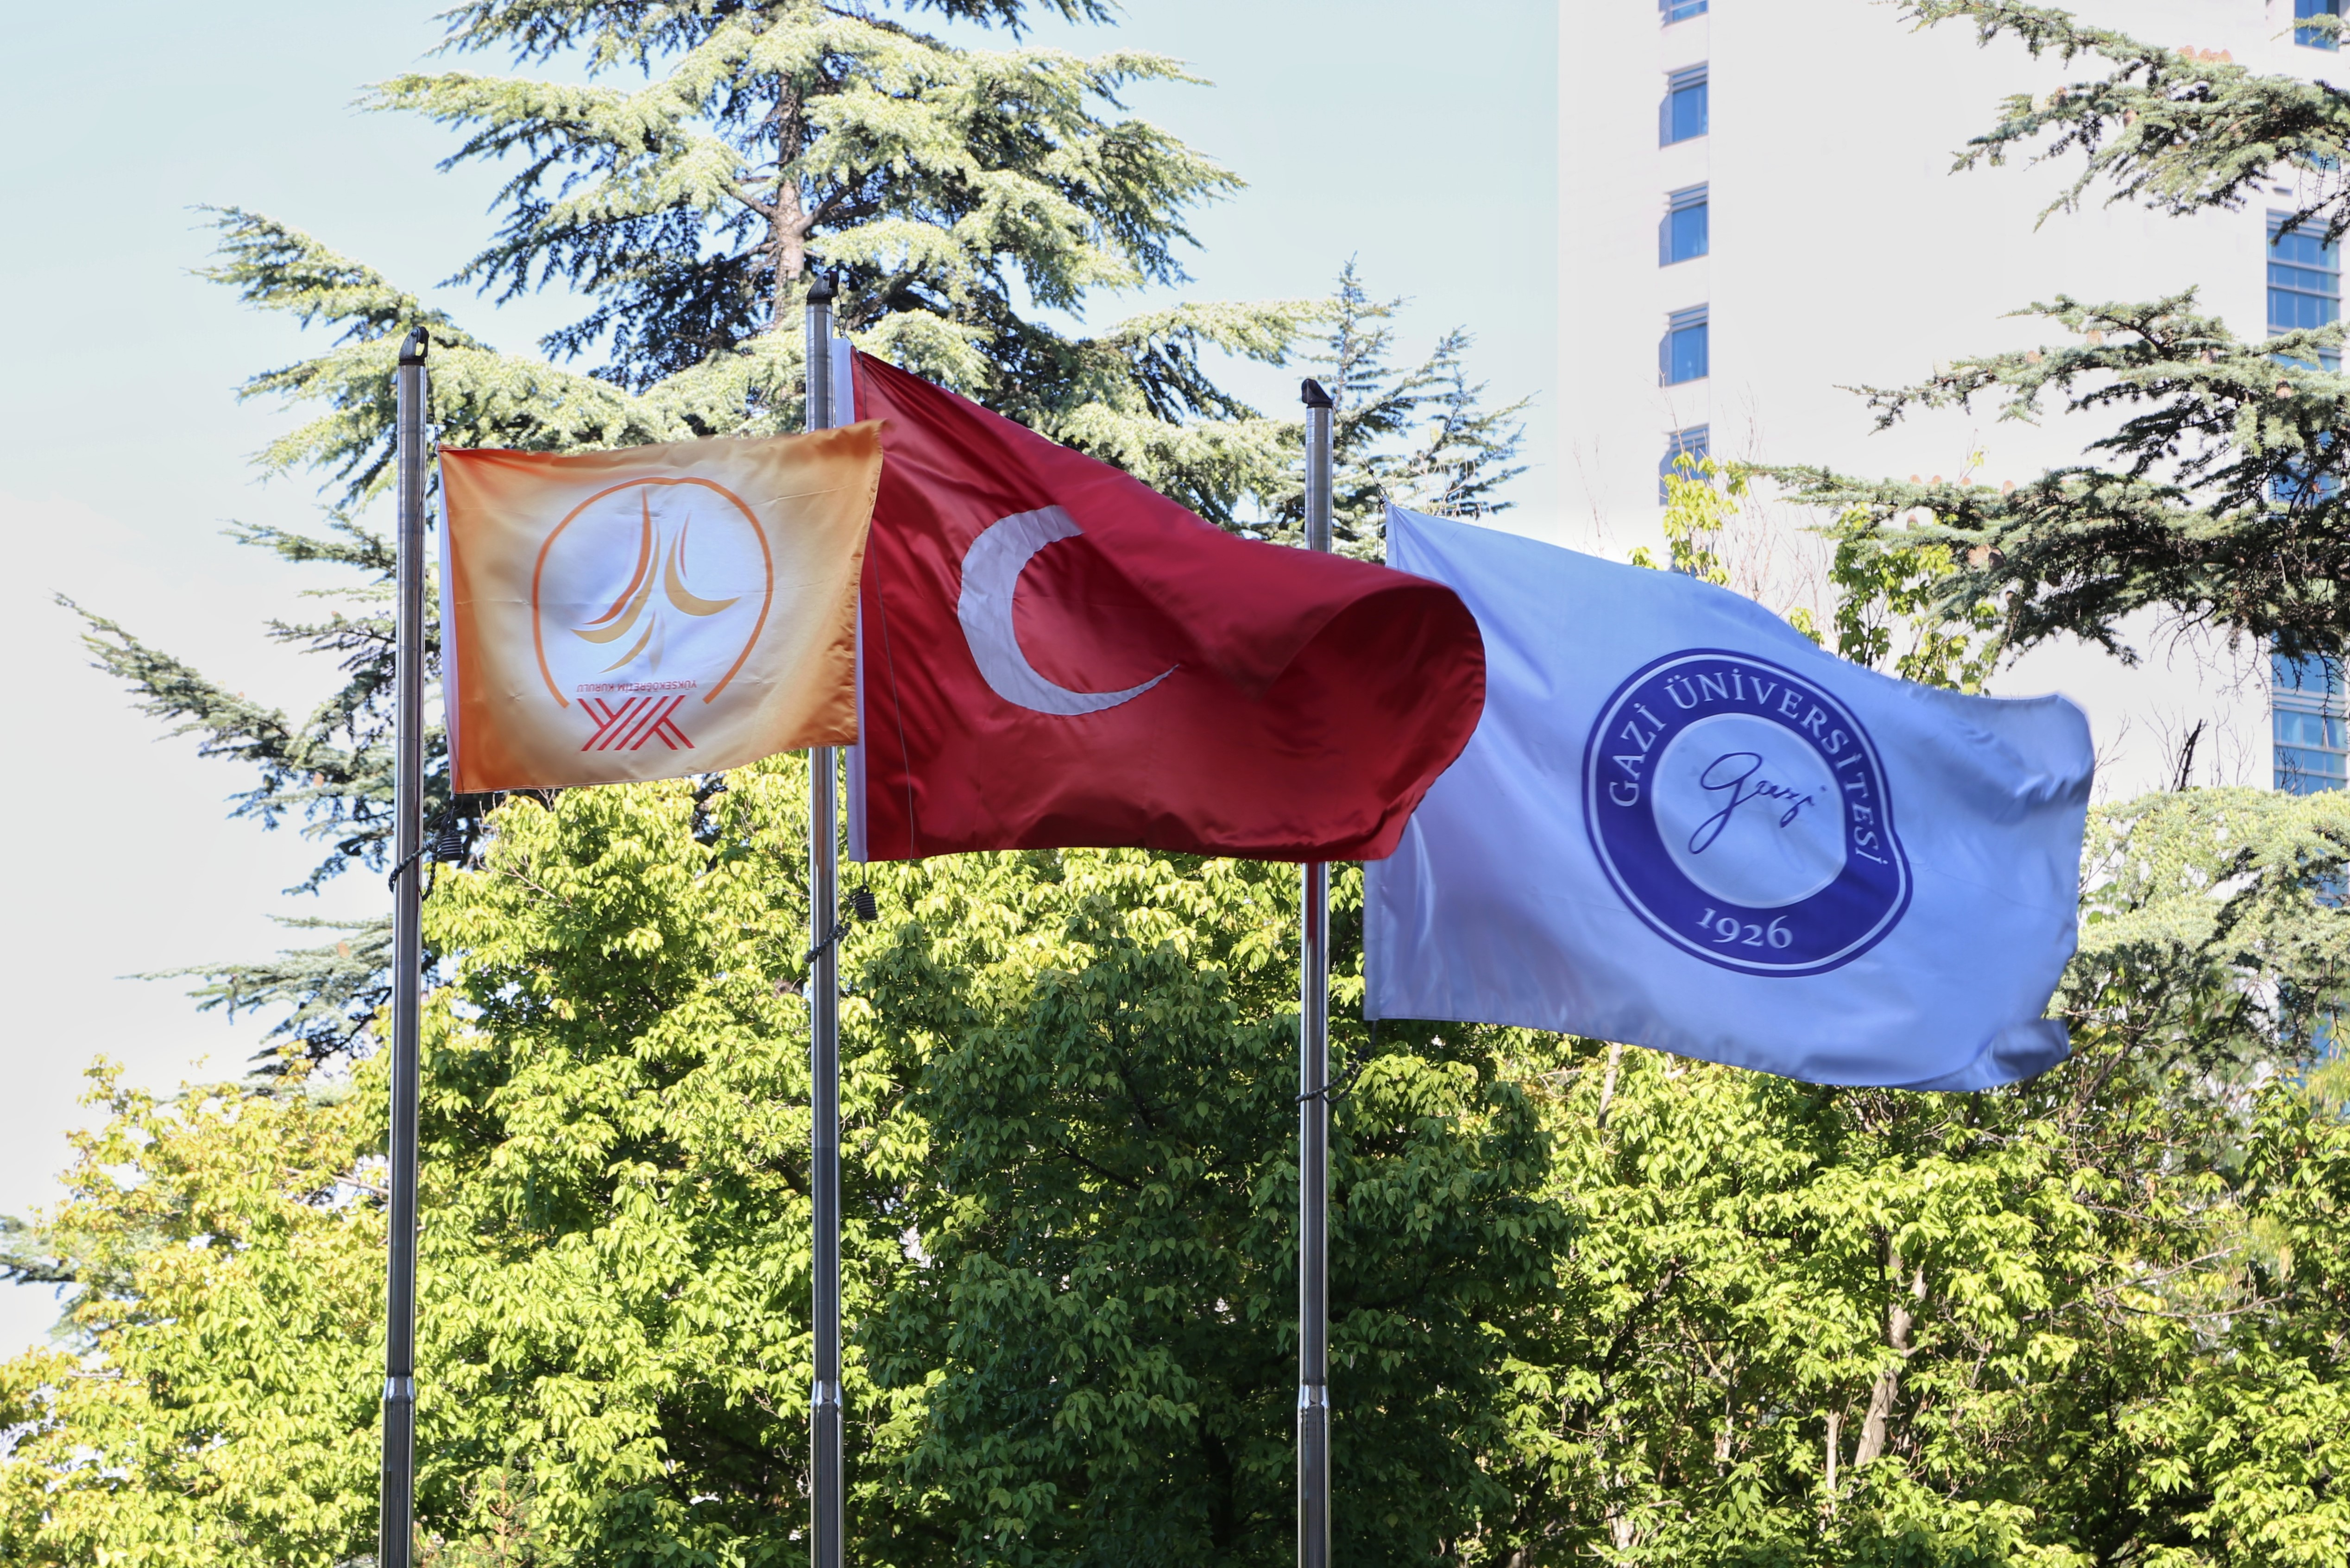 Orange Flag' Award to our University by the council of Higher Education (YÖK)